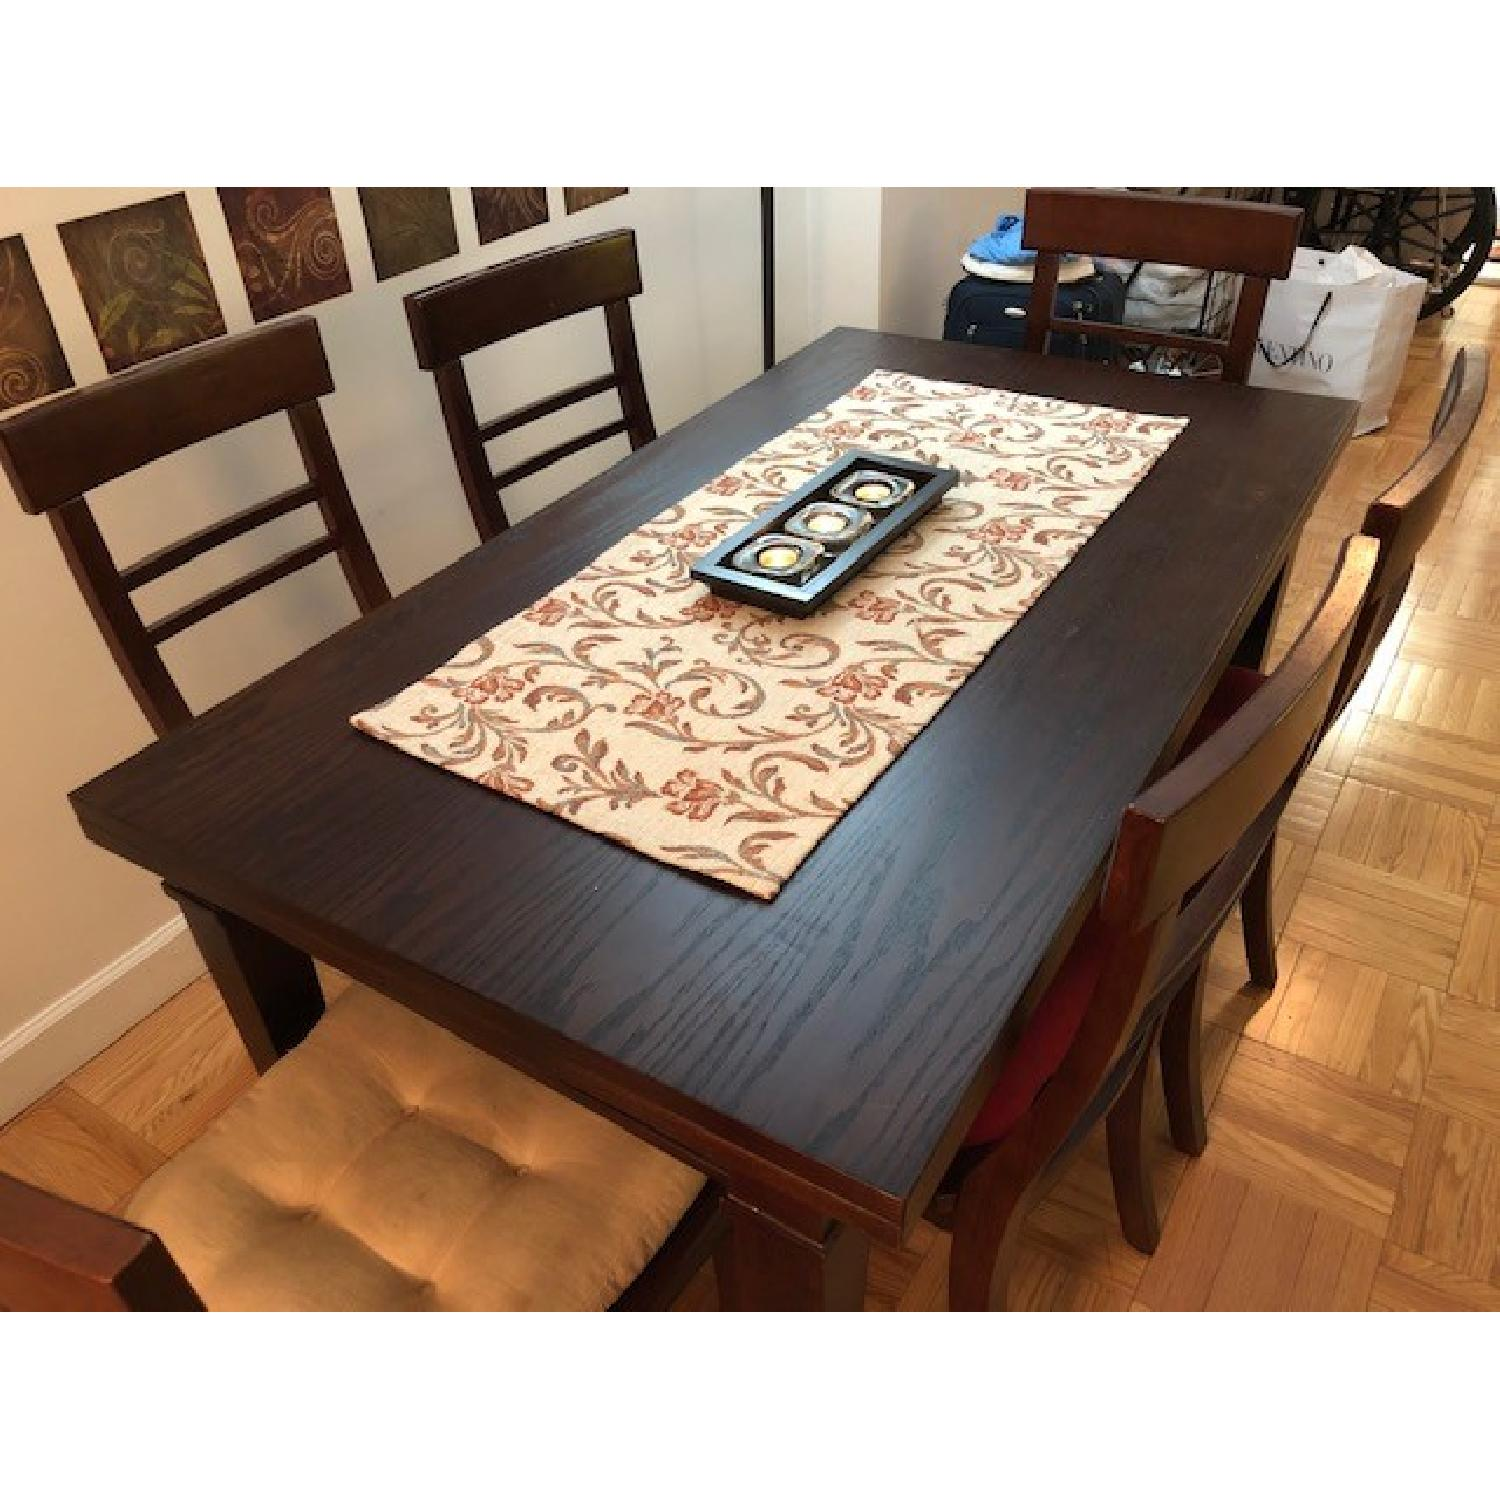 Crate & Barrel Table w/ 6 Chairs-2